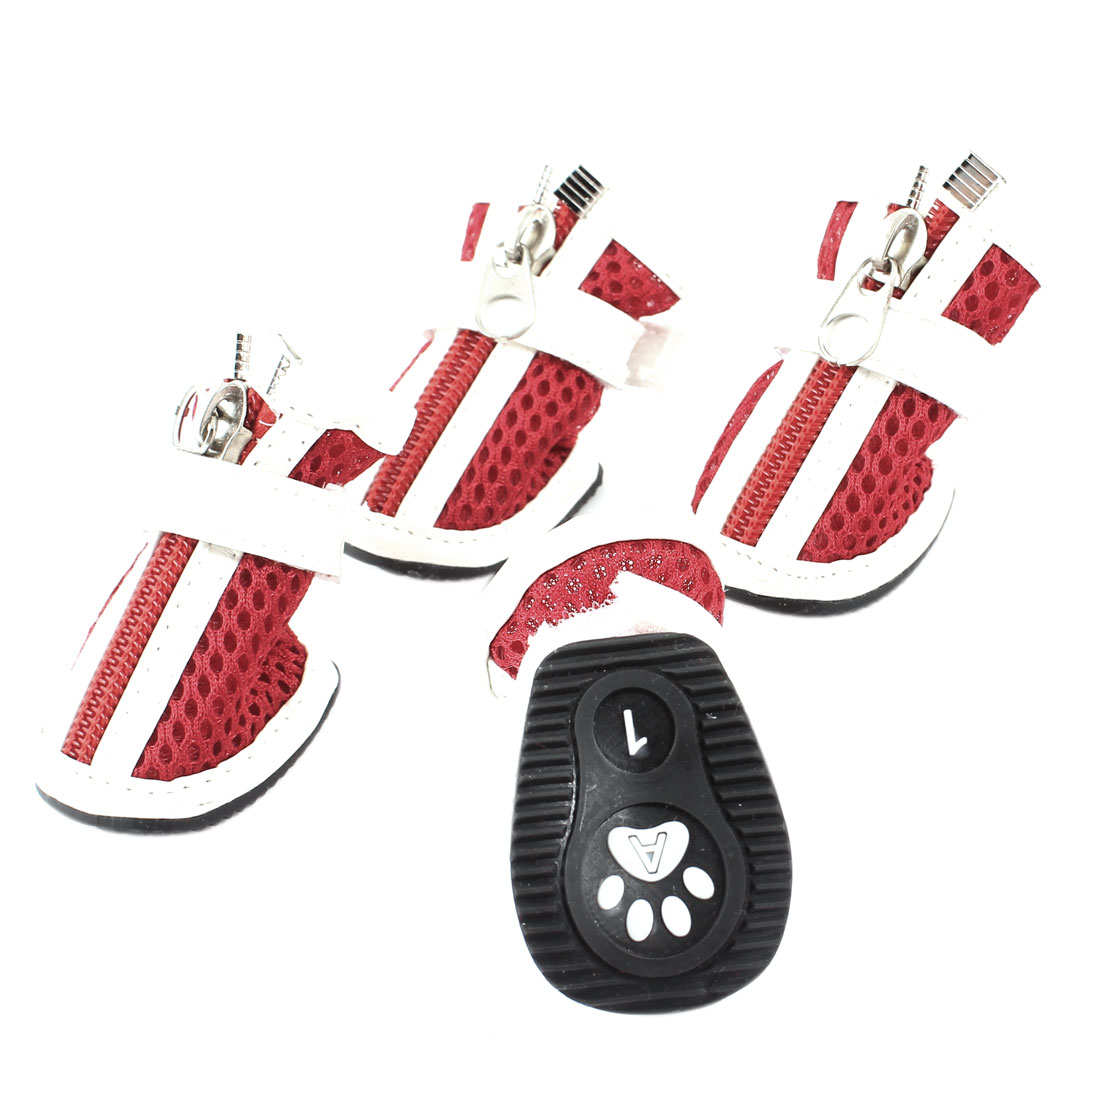 2 Pairs Red White Hook Loop Fastener Zip Up Nonskid Sole Meshy Pet Dog Doggy Shoes Size XXS